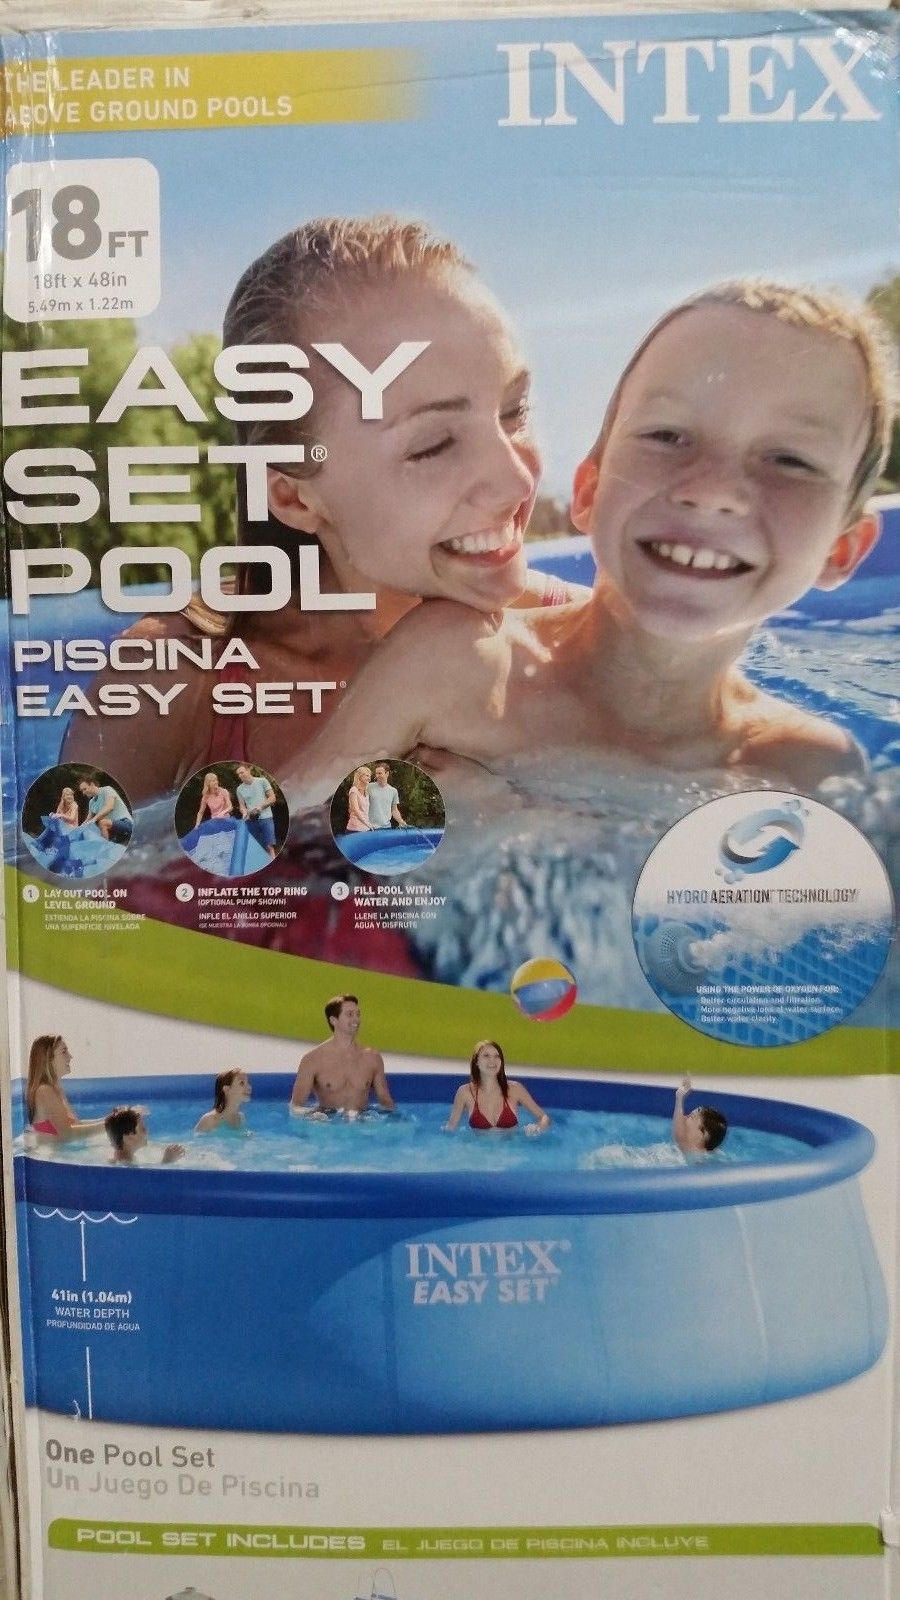 Care Intex Easy Set Above Ground Pool 18ft Dia X 48in H